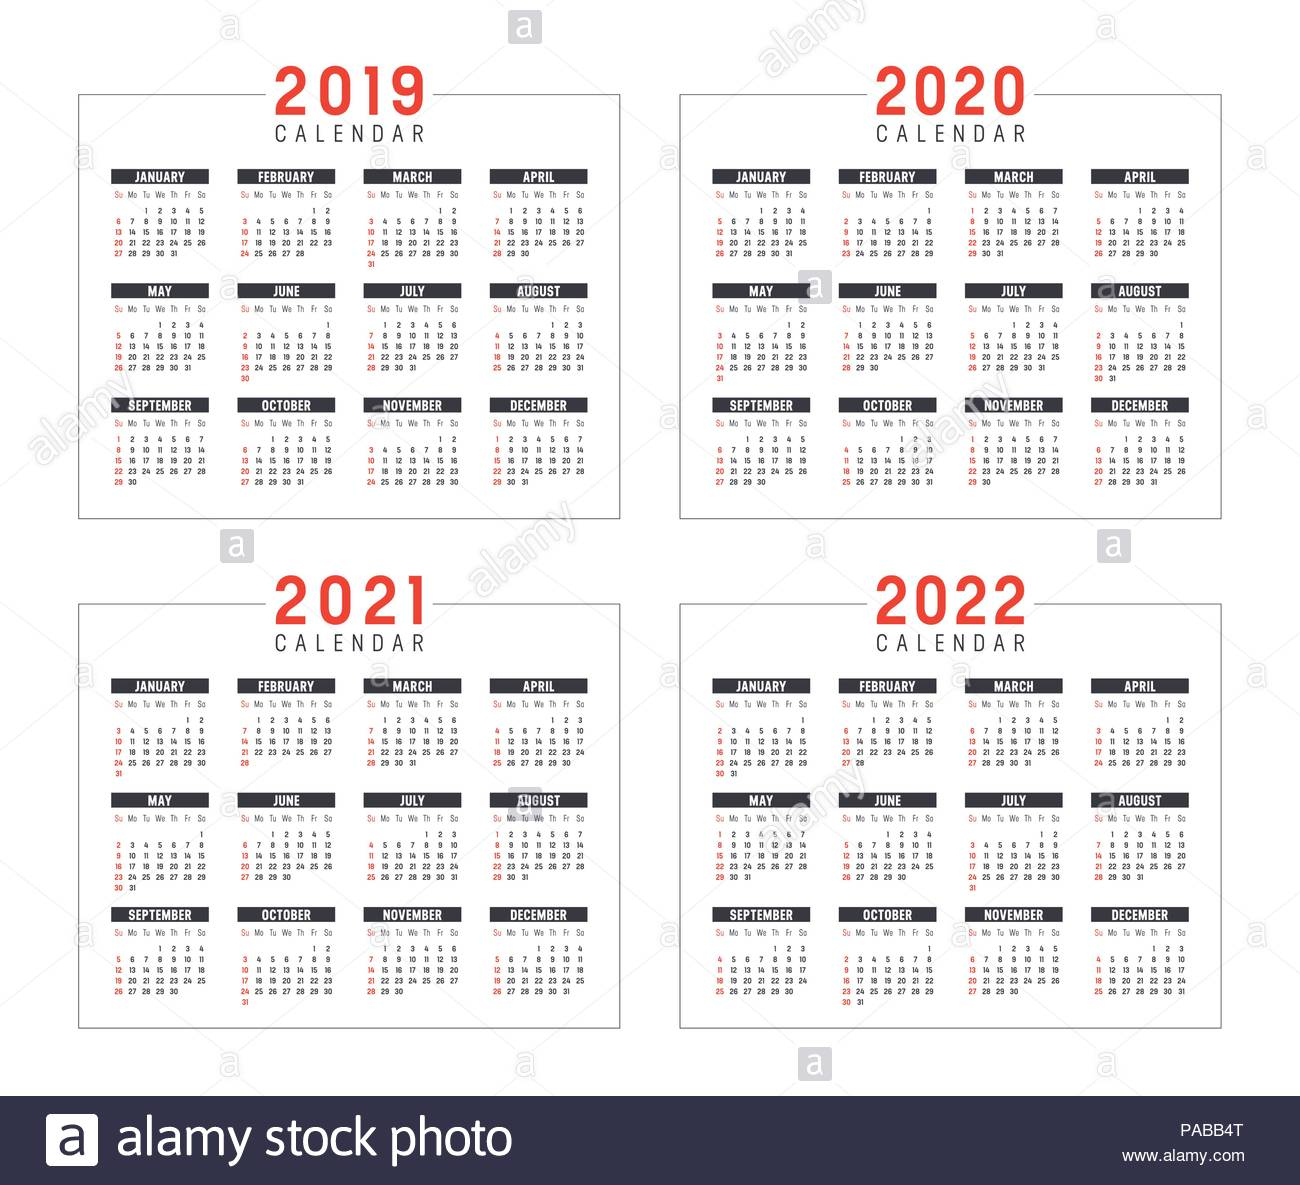 Calendar 2021 Stock Photos & Calendar 2021 Stock Images - Alamy